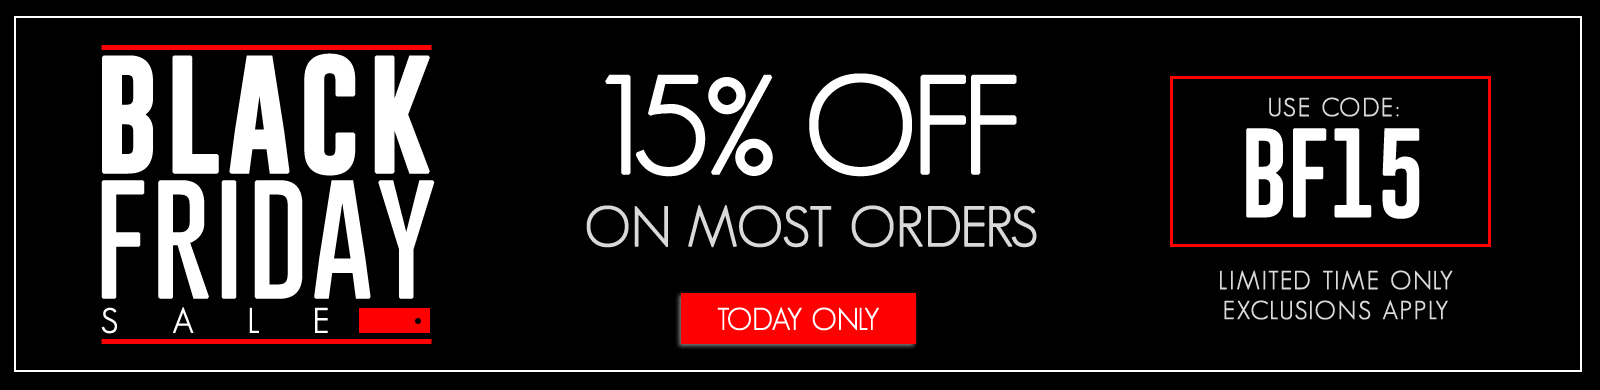 BLACK FRIDAY EXCLUSIVE! Save 15% Now - No Minimum Purchase Required!